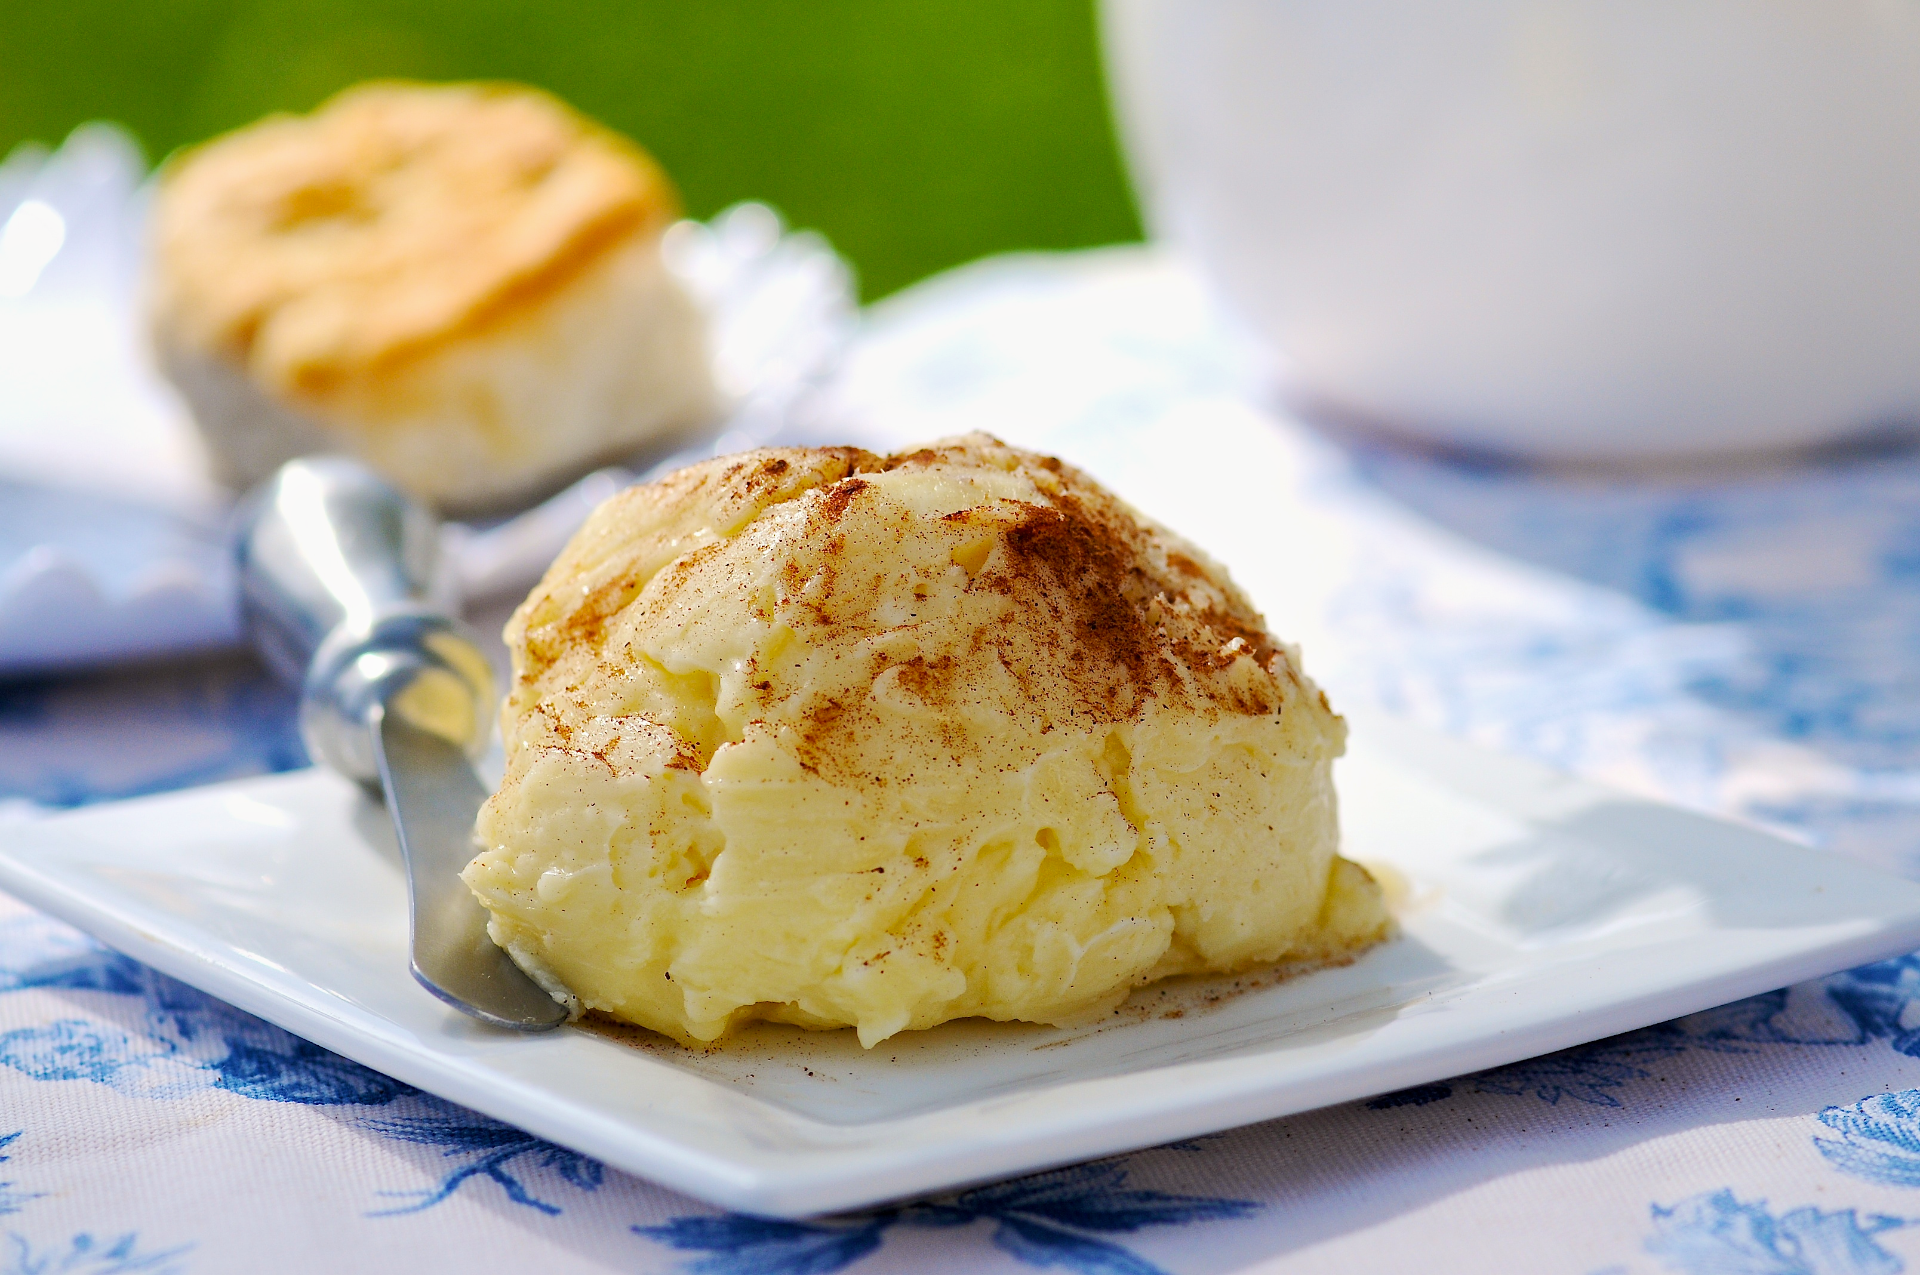 Here's an easy way to add wonderful, sweet and buttery flavor to the dinner table. Top ordinary buttermilk biscuits with this honey butter and enjoy a taste experience that's out of this world.